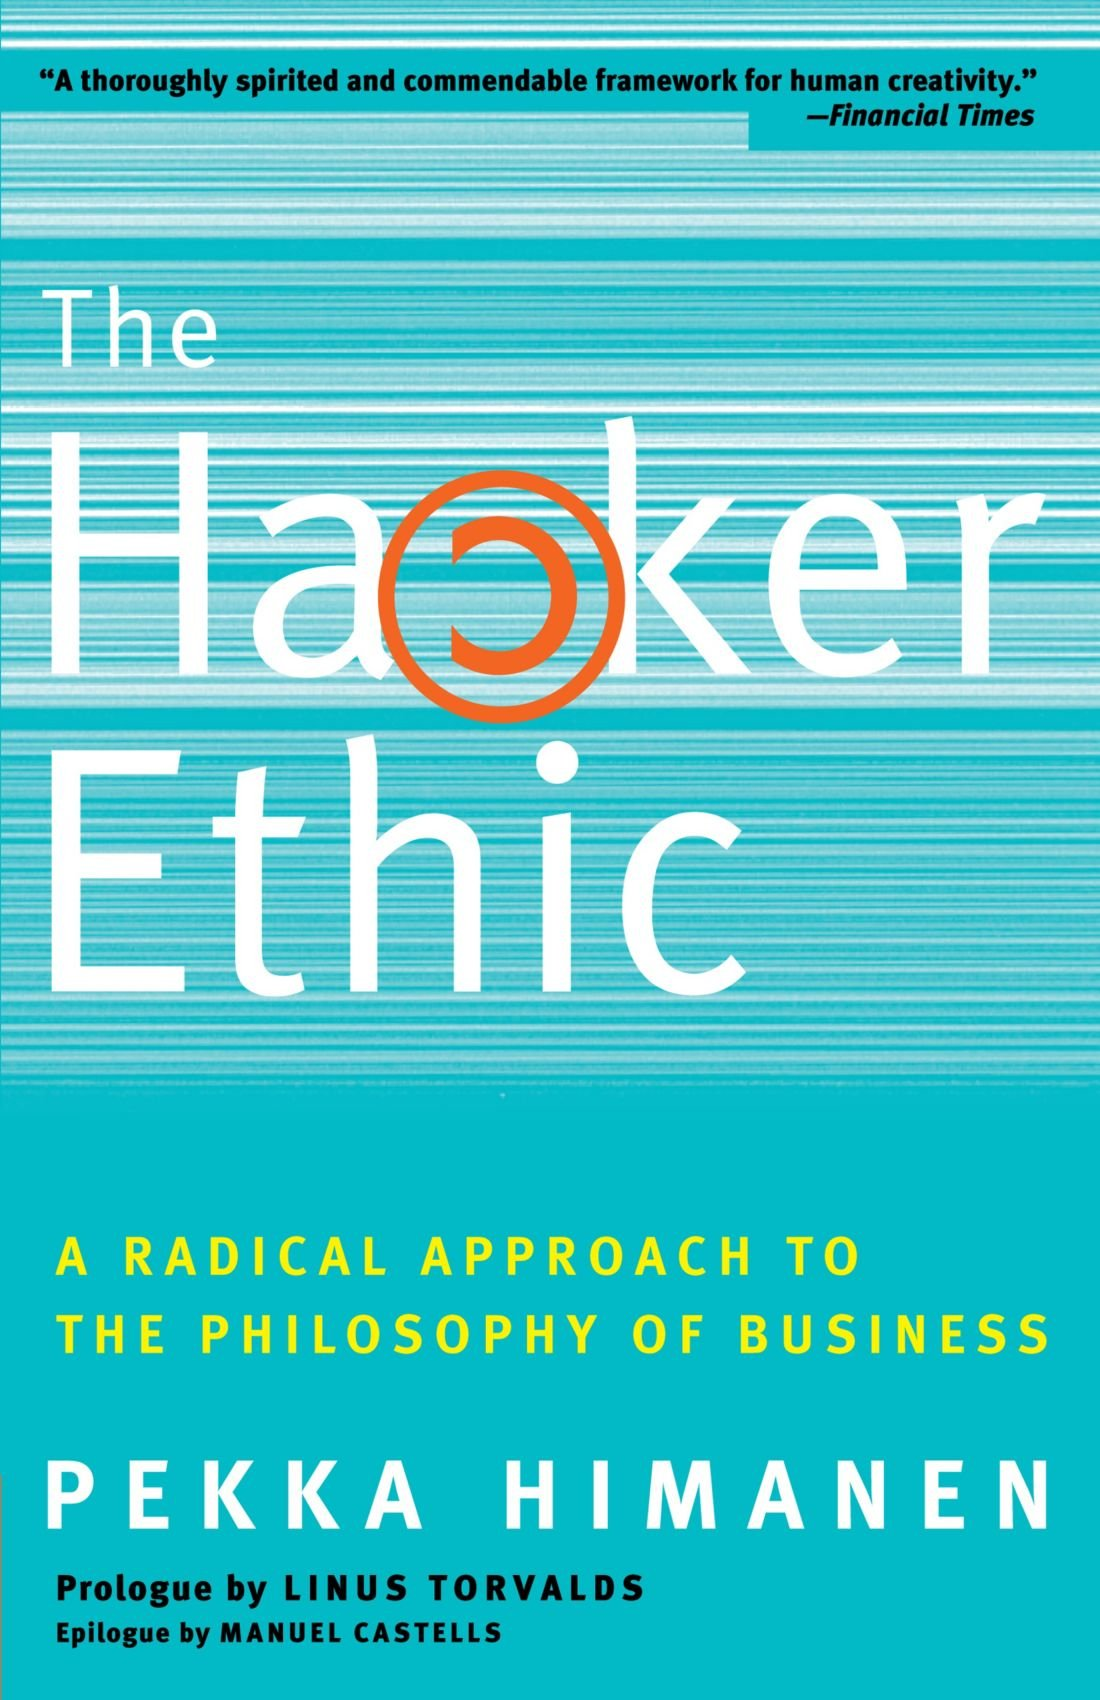 Pekka Himanen - The Hacker Ethic and the Spirit of the New Economy